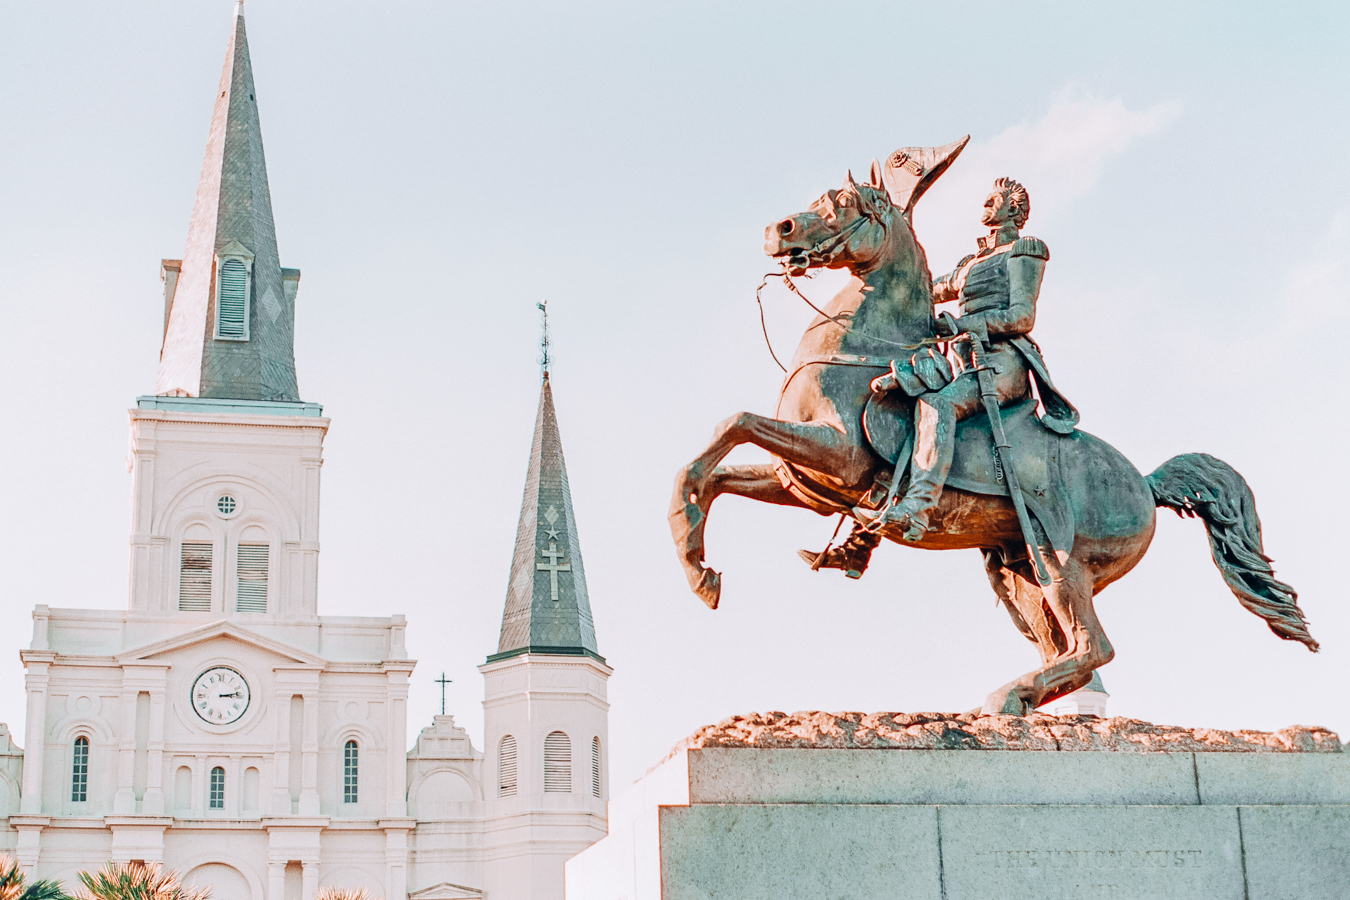 Statue and building in New Orleans